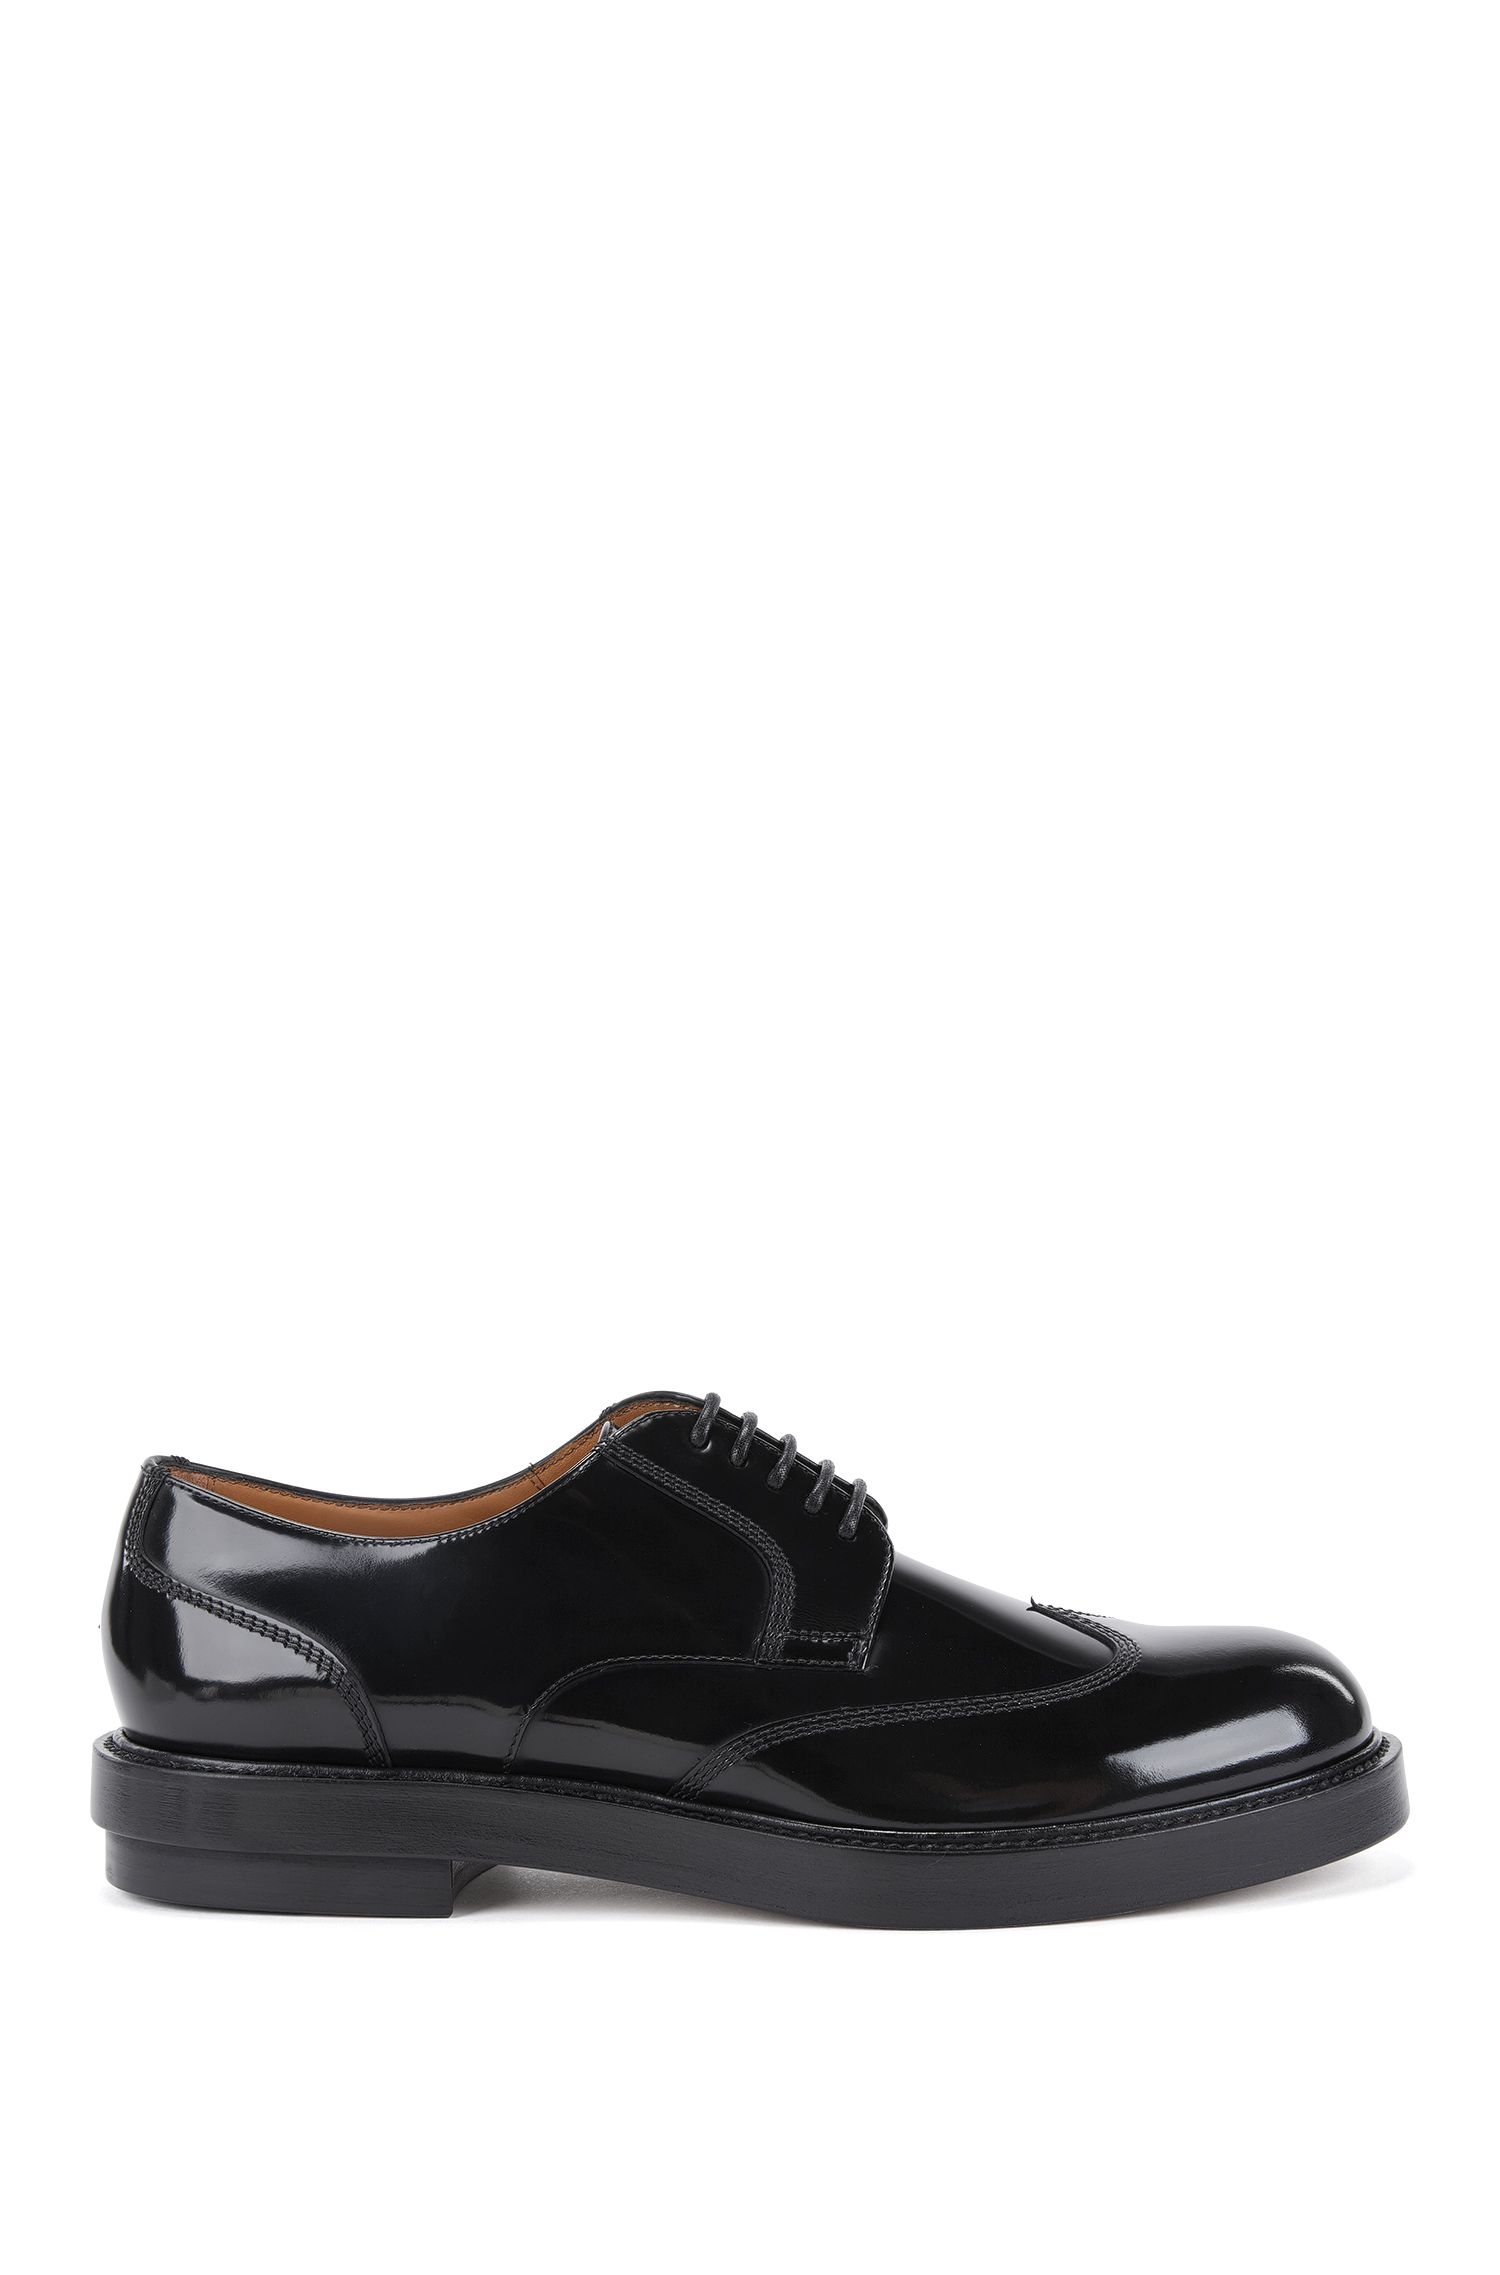 Wingtip Derby shoes in brush-off leather